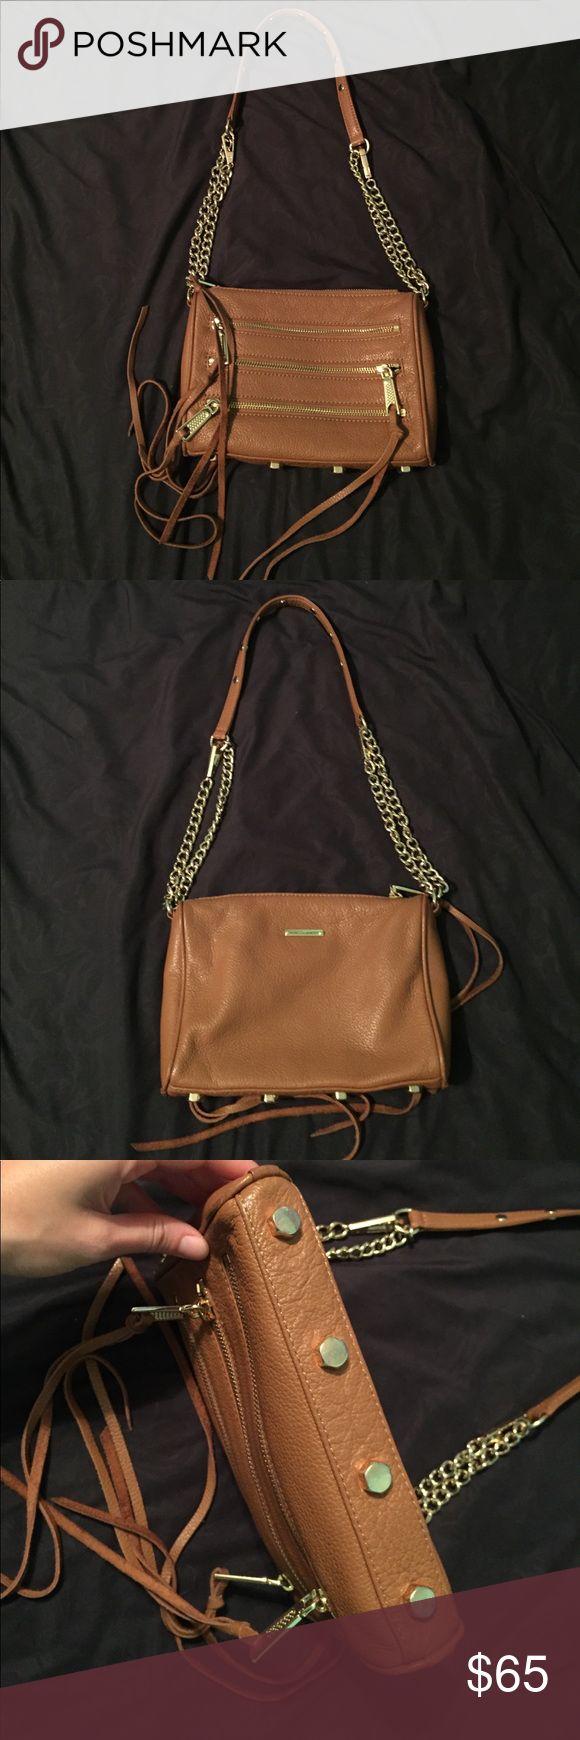 Rebecca Minkoff 5 zip crossbody This bag is in great condition. Just selling because I have too many purses! The chain is adjustable to make it crossbody length or shoulder length. I even have extra replacement tassels. Rebecca Minkoff Bags Crossbody Bags